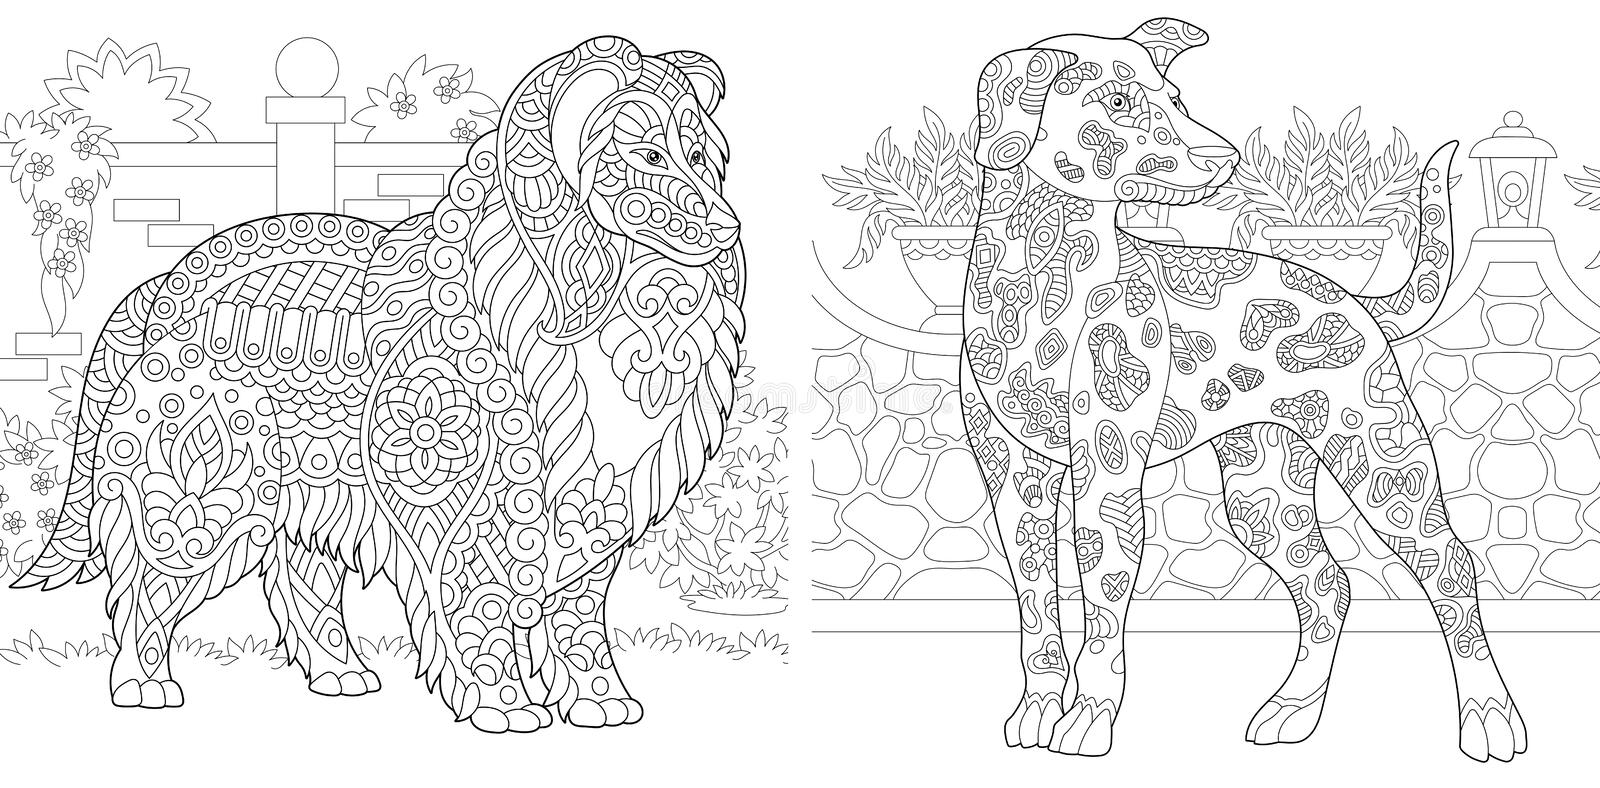 Coloring Pages. Coloring Book for adults. Colouring pictures with Rough Collie and Dalmatian dogs. Antistress freehand sketch. Drawing with doodle and zentangle stock illustration